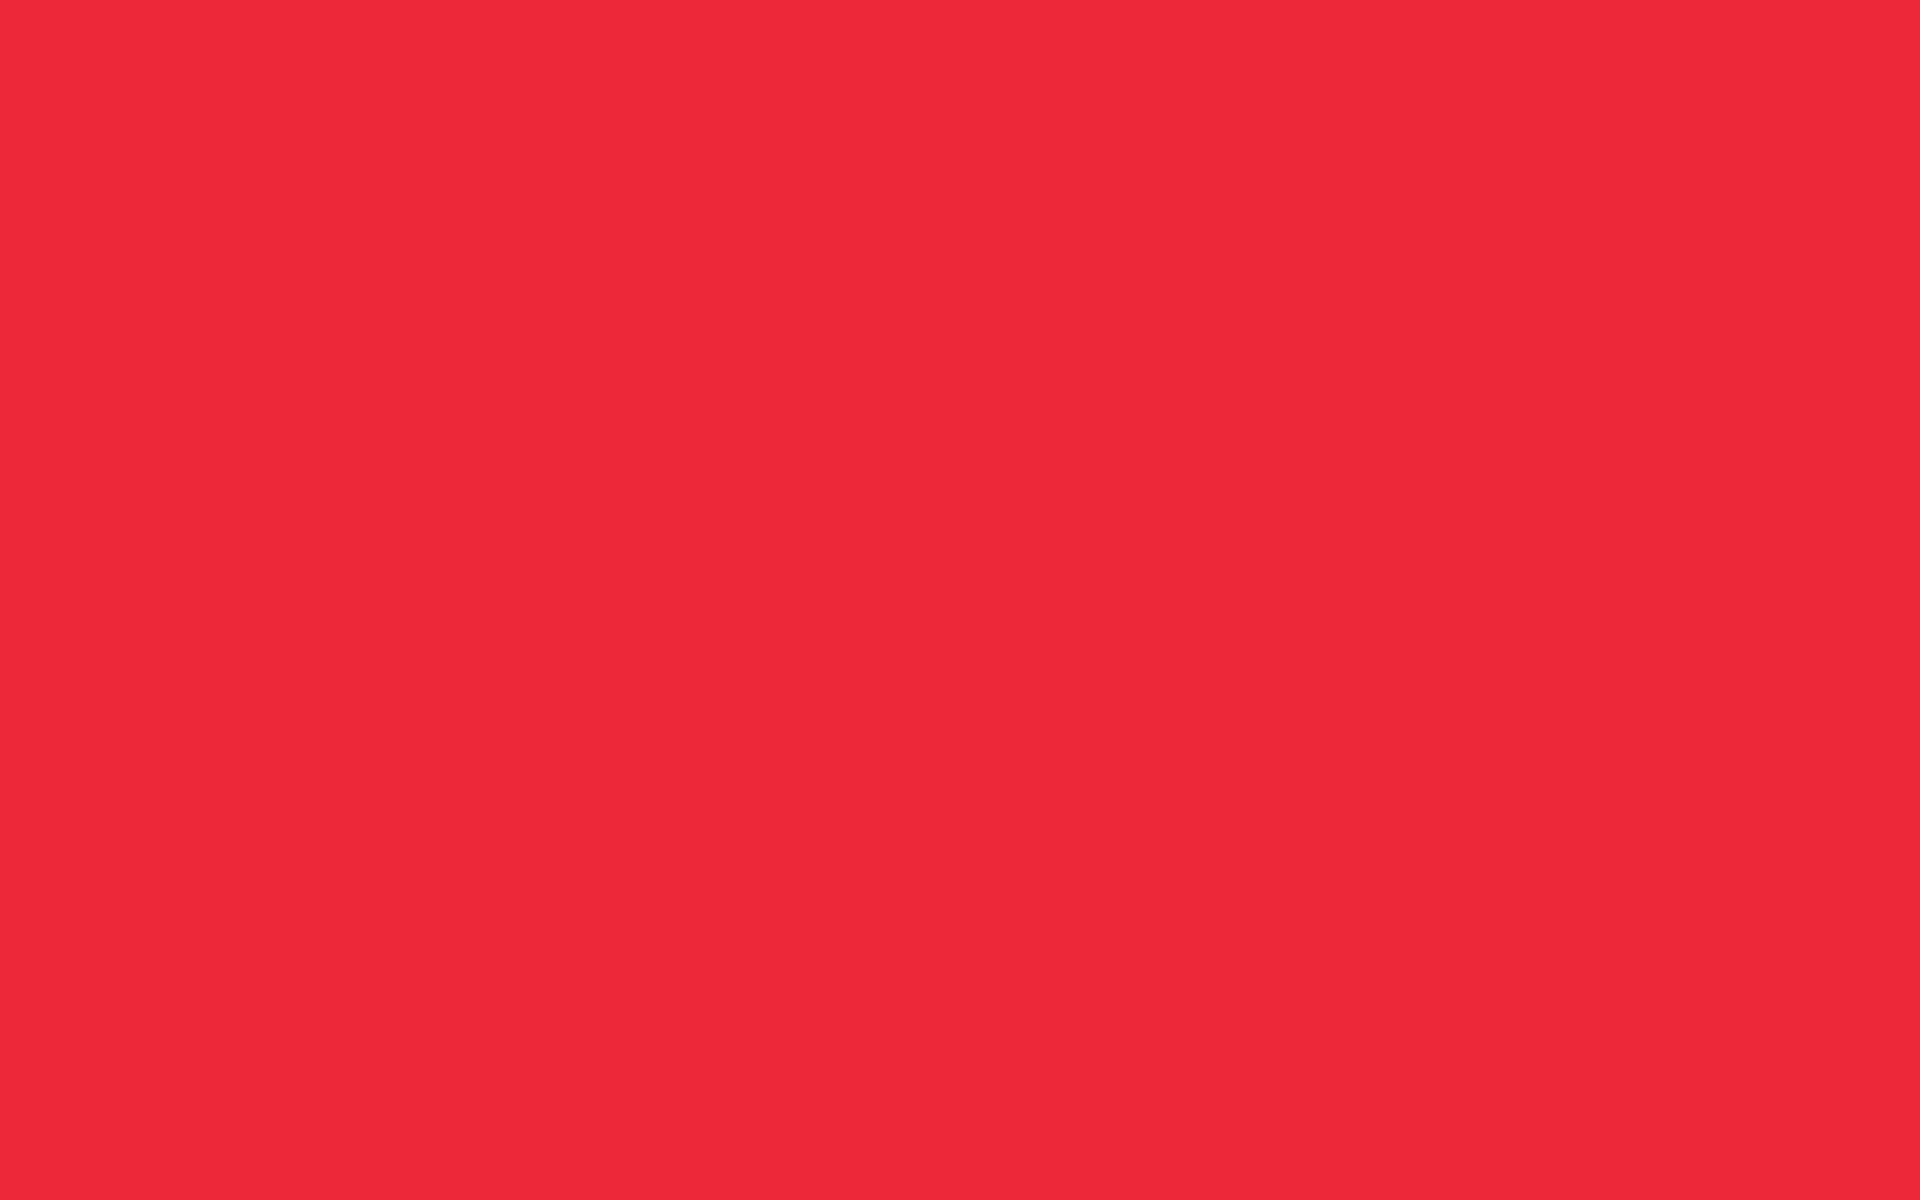 1920x1200 Red Pantone Solid Color Background